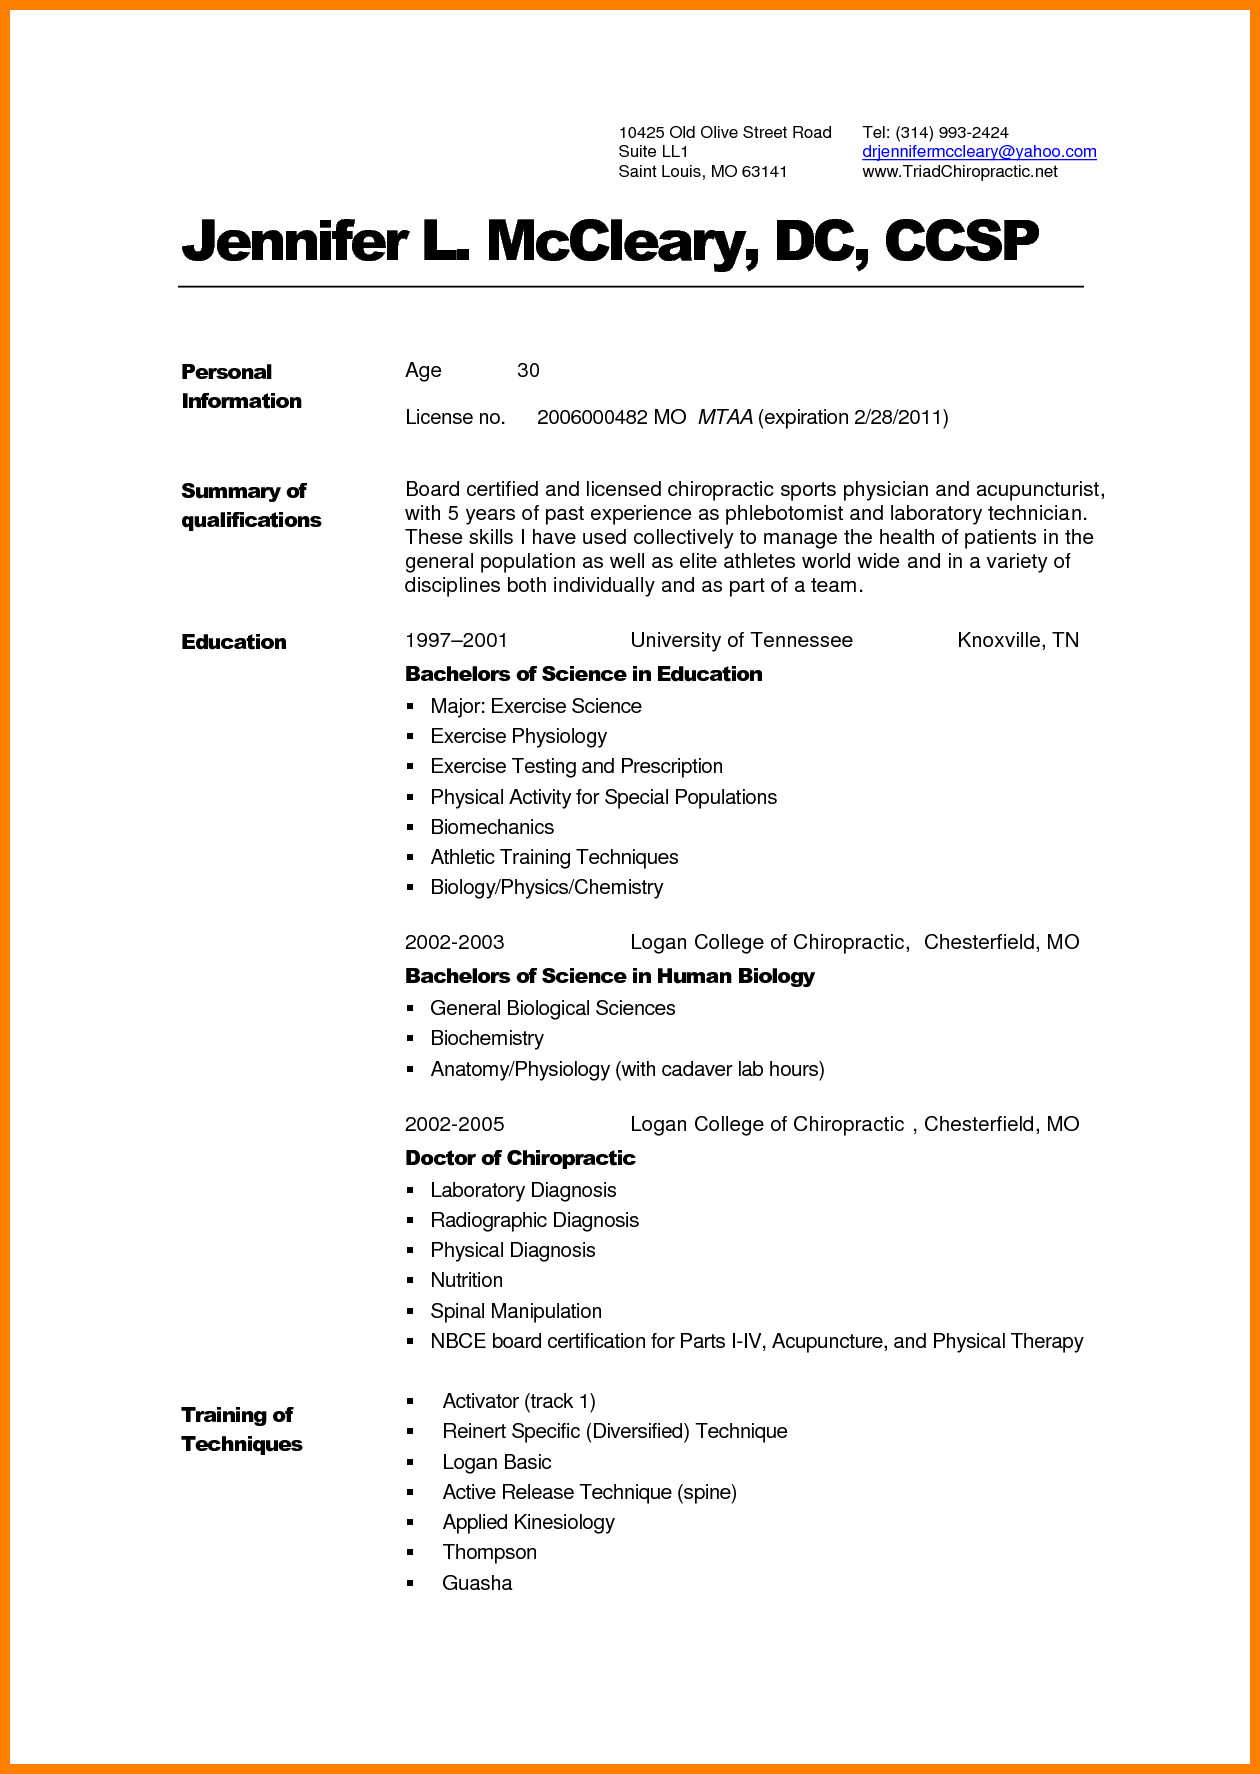 Medical Curriculum Vitae Templates 8 Curriculum Vitae for Doctors Sample